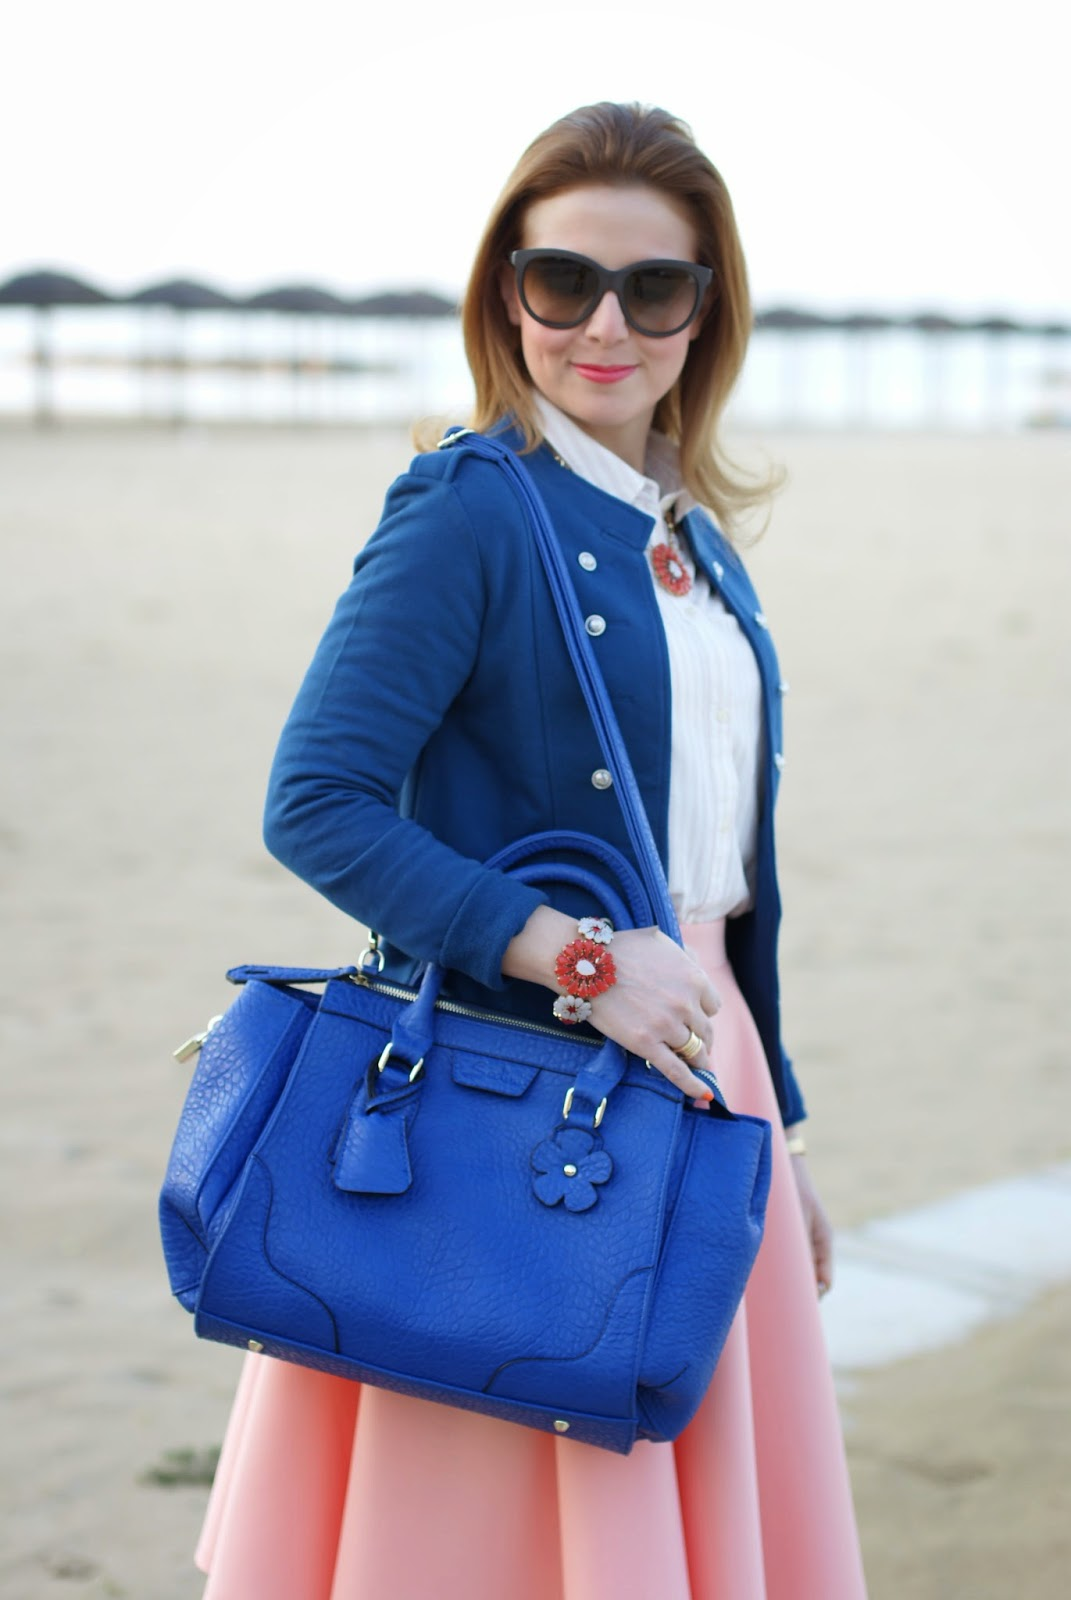 Sodini bijoux Spring Summer 2014, Only Anette military blazer, borsa blu bauletto Sodini, Fashion and Cookies, fashion blogger